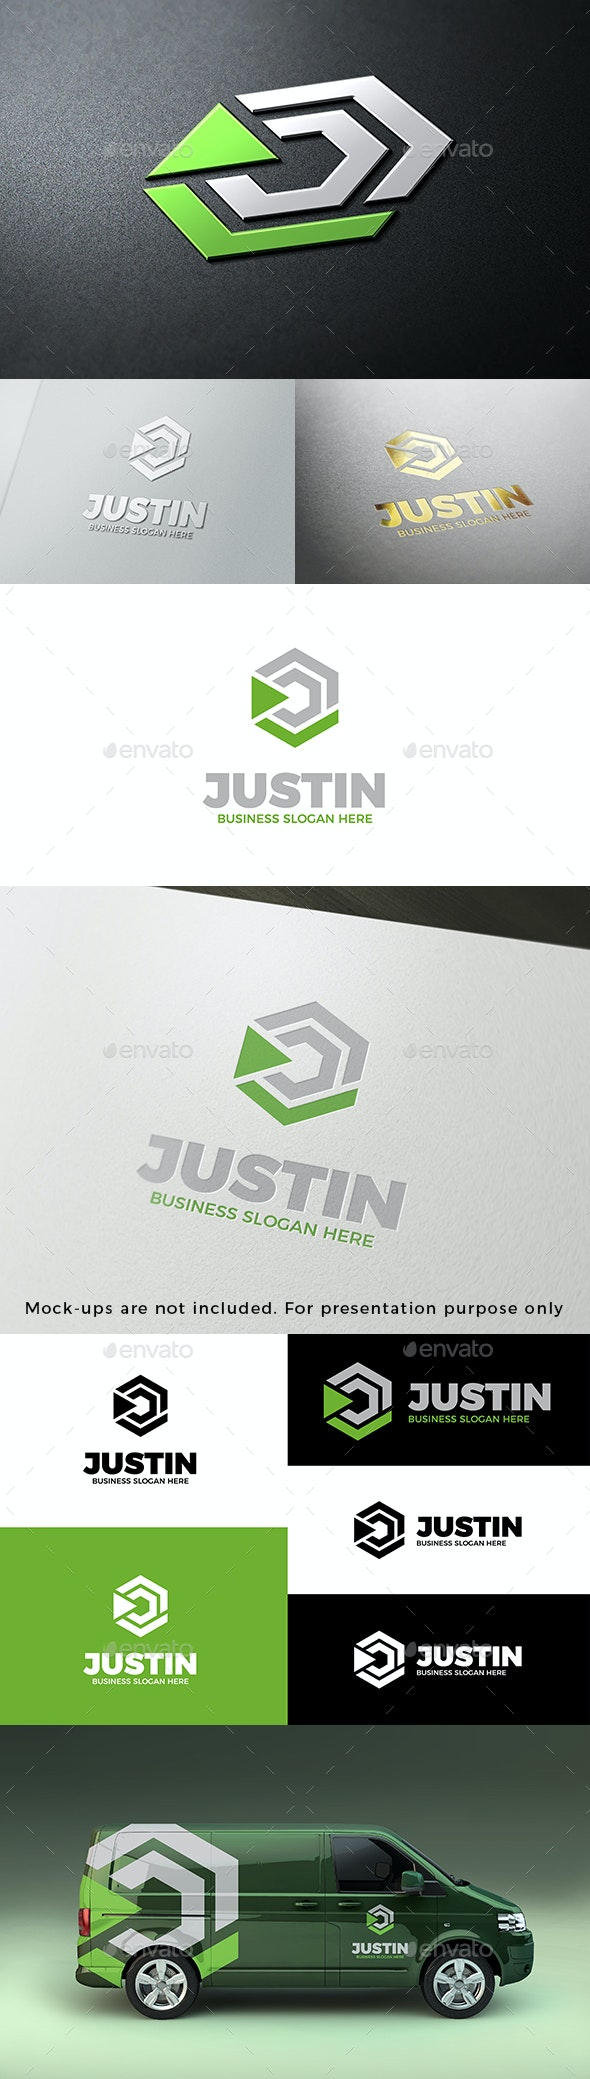 Just In - Abstract Cube Symbol Geometric Logo - Abstract Logo Templates